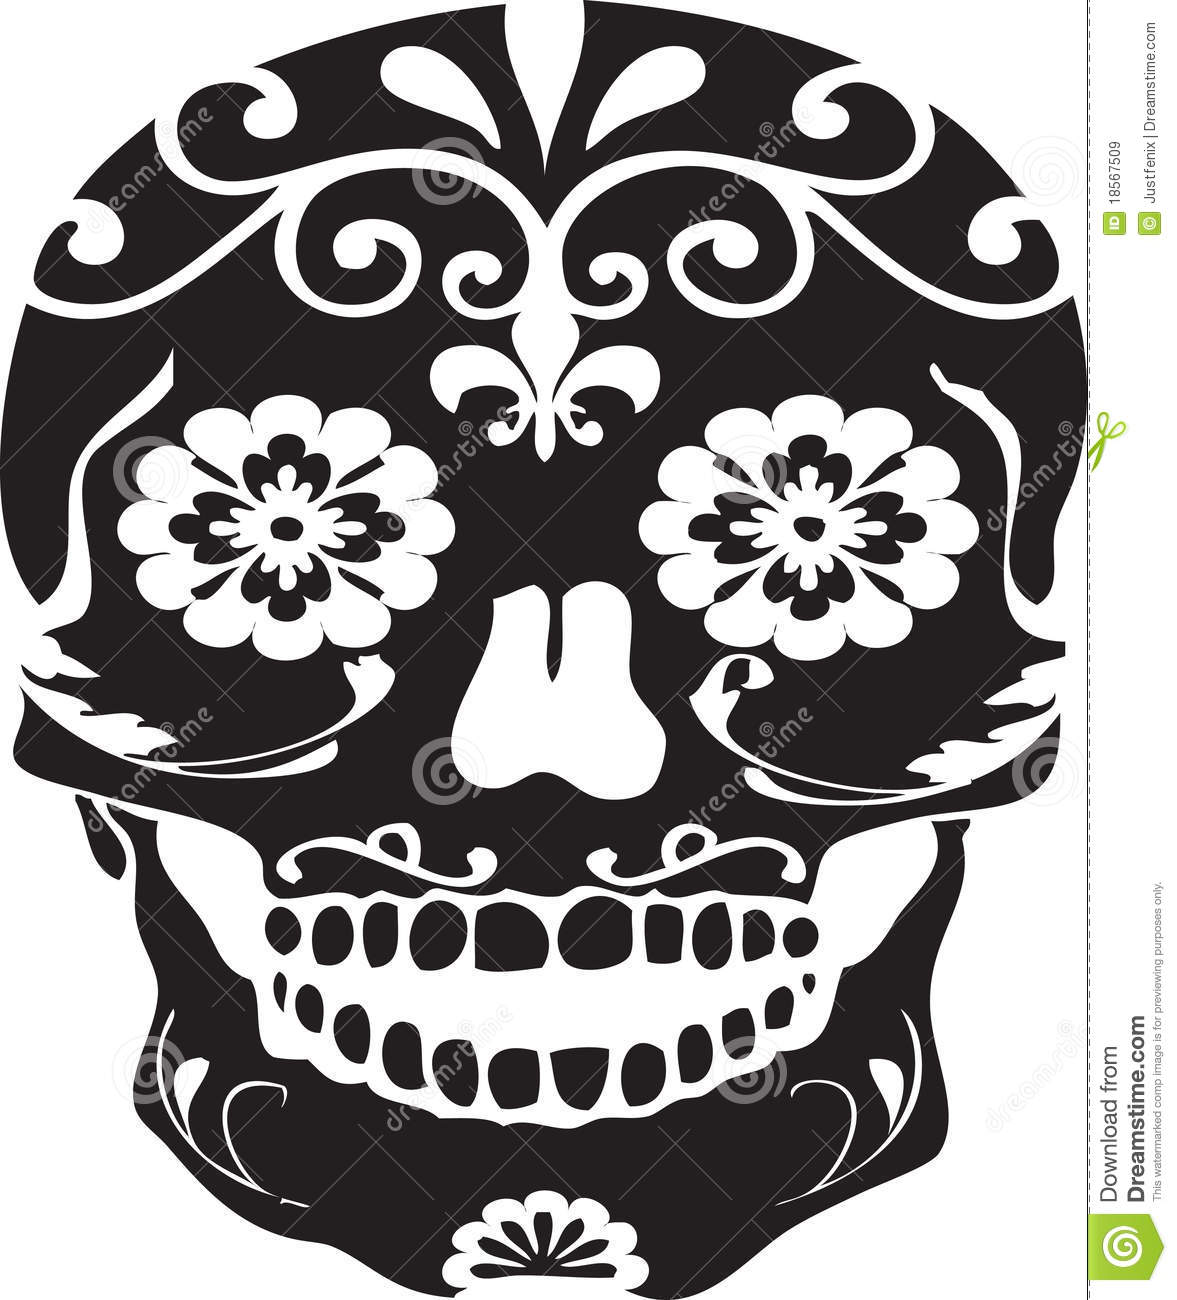 Gallery For gt Day Of The Dead Skull Black And White